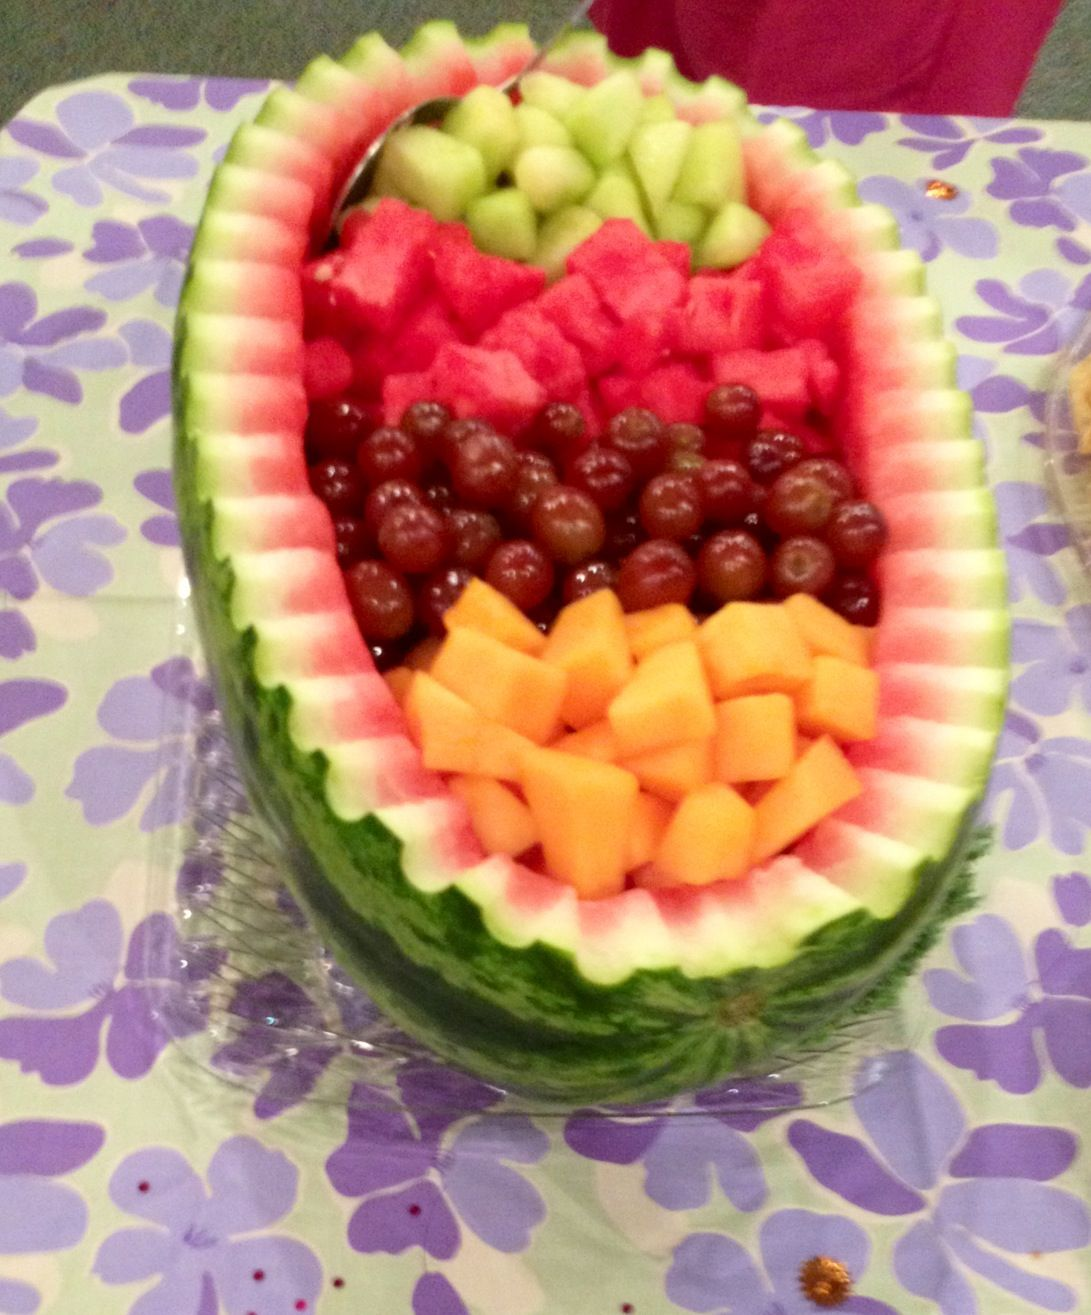 Easy Fruit Carving Ideas Entrees and More Art G...